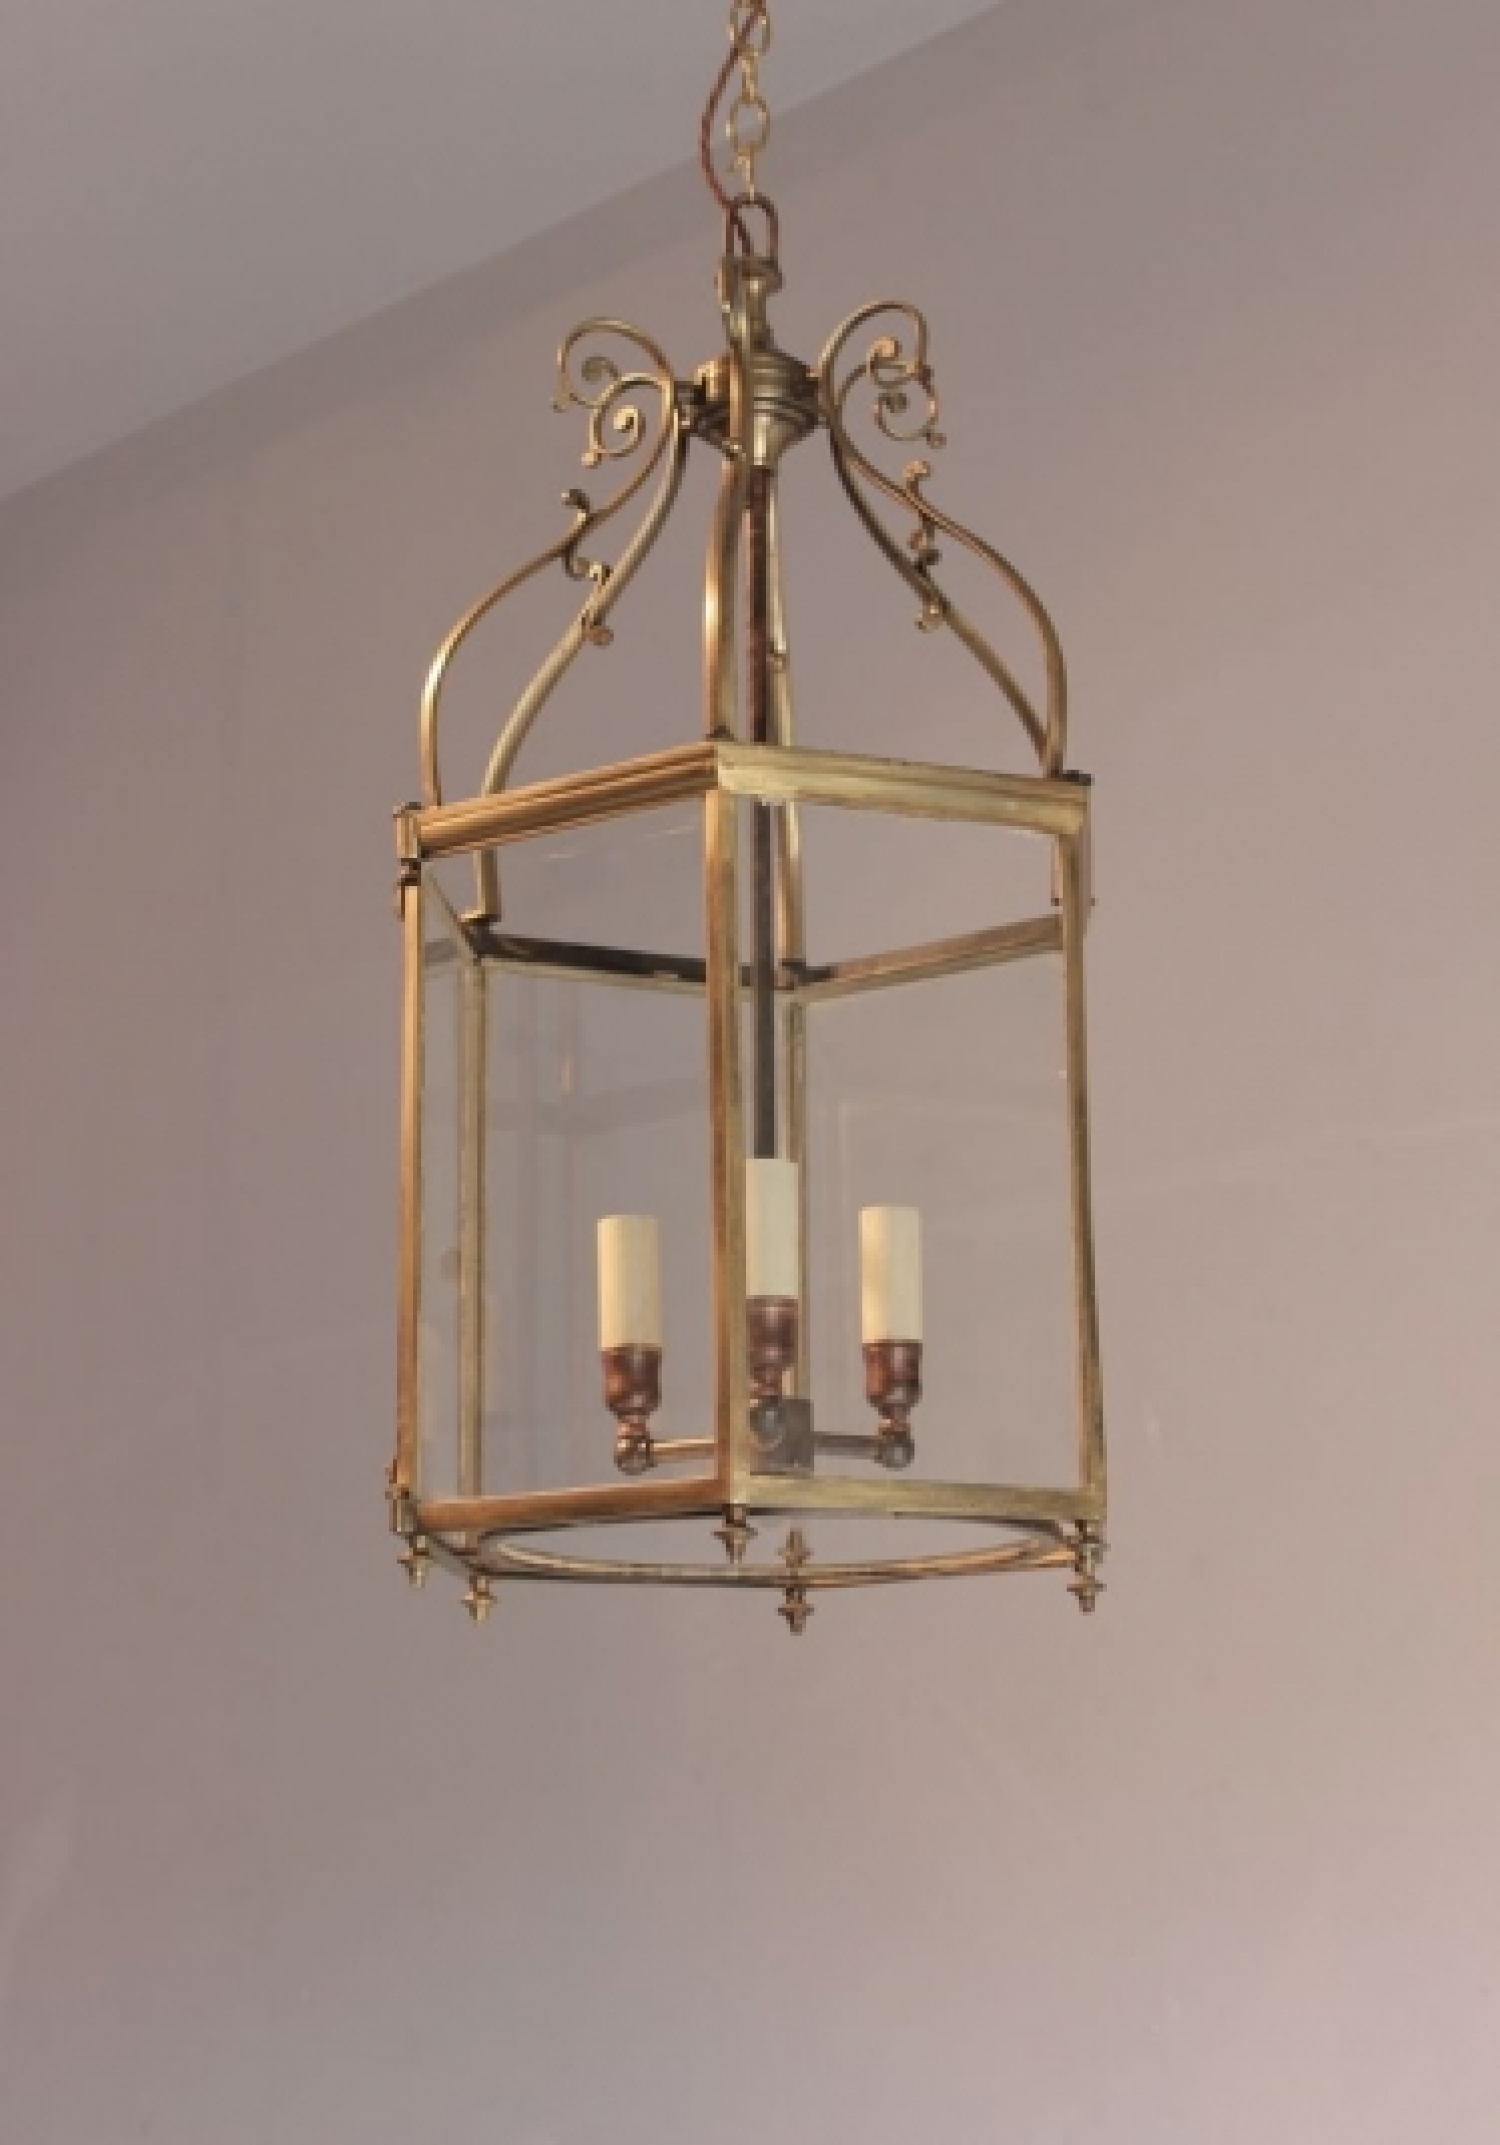 Antique Hall Lanterns  - Light up for Christmas - image 3